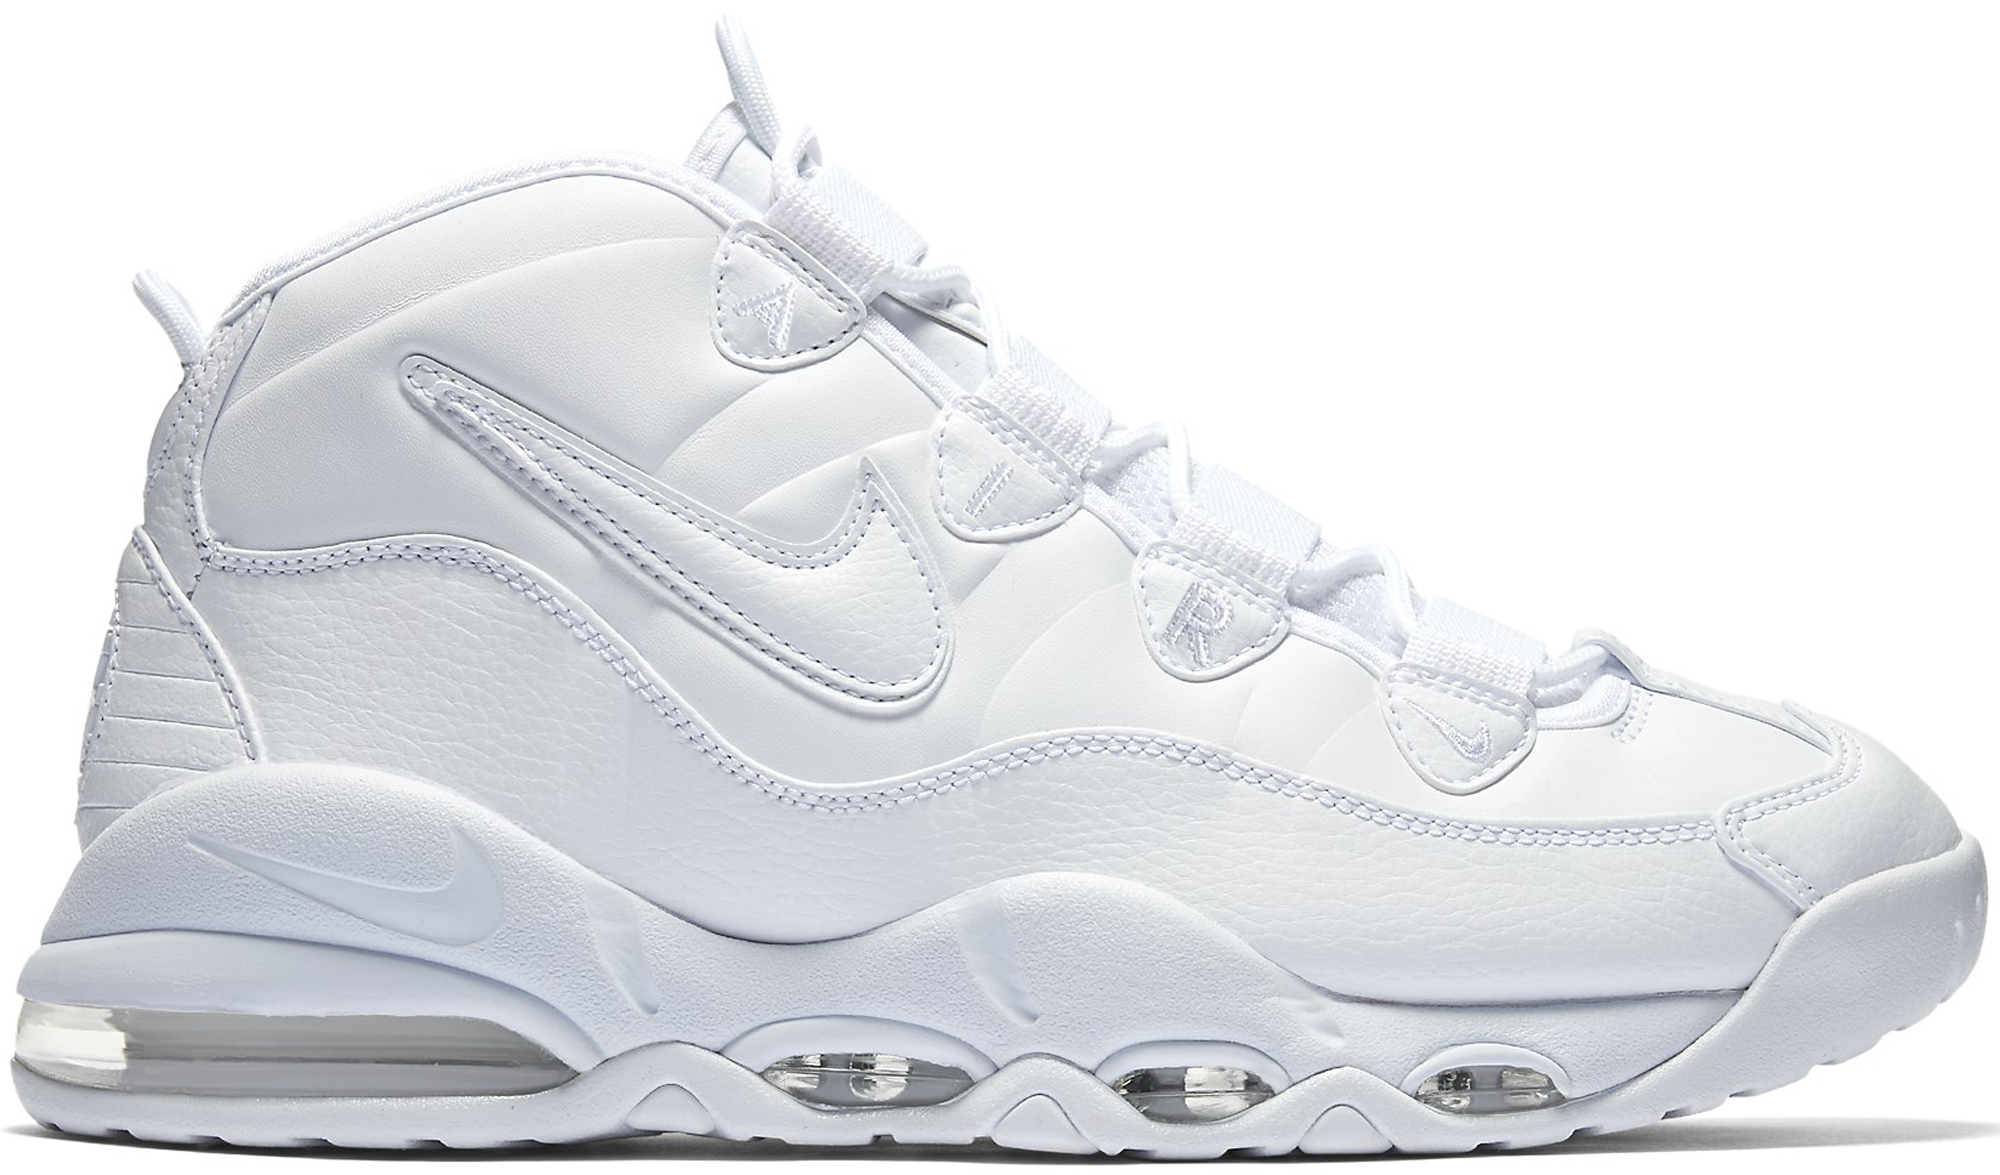 Air Max Uptempo 95 Contacts Coloris